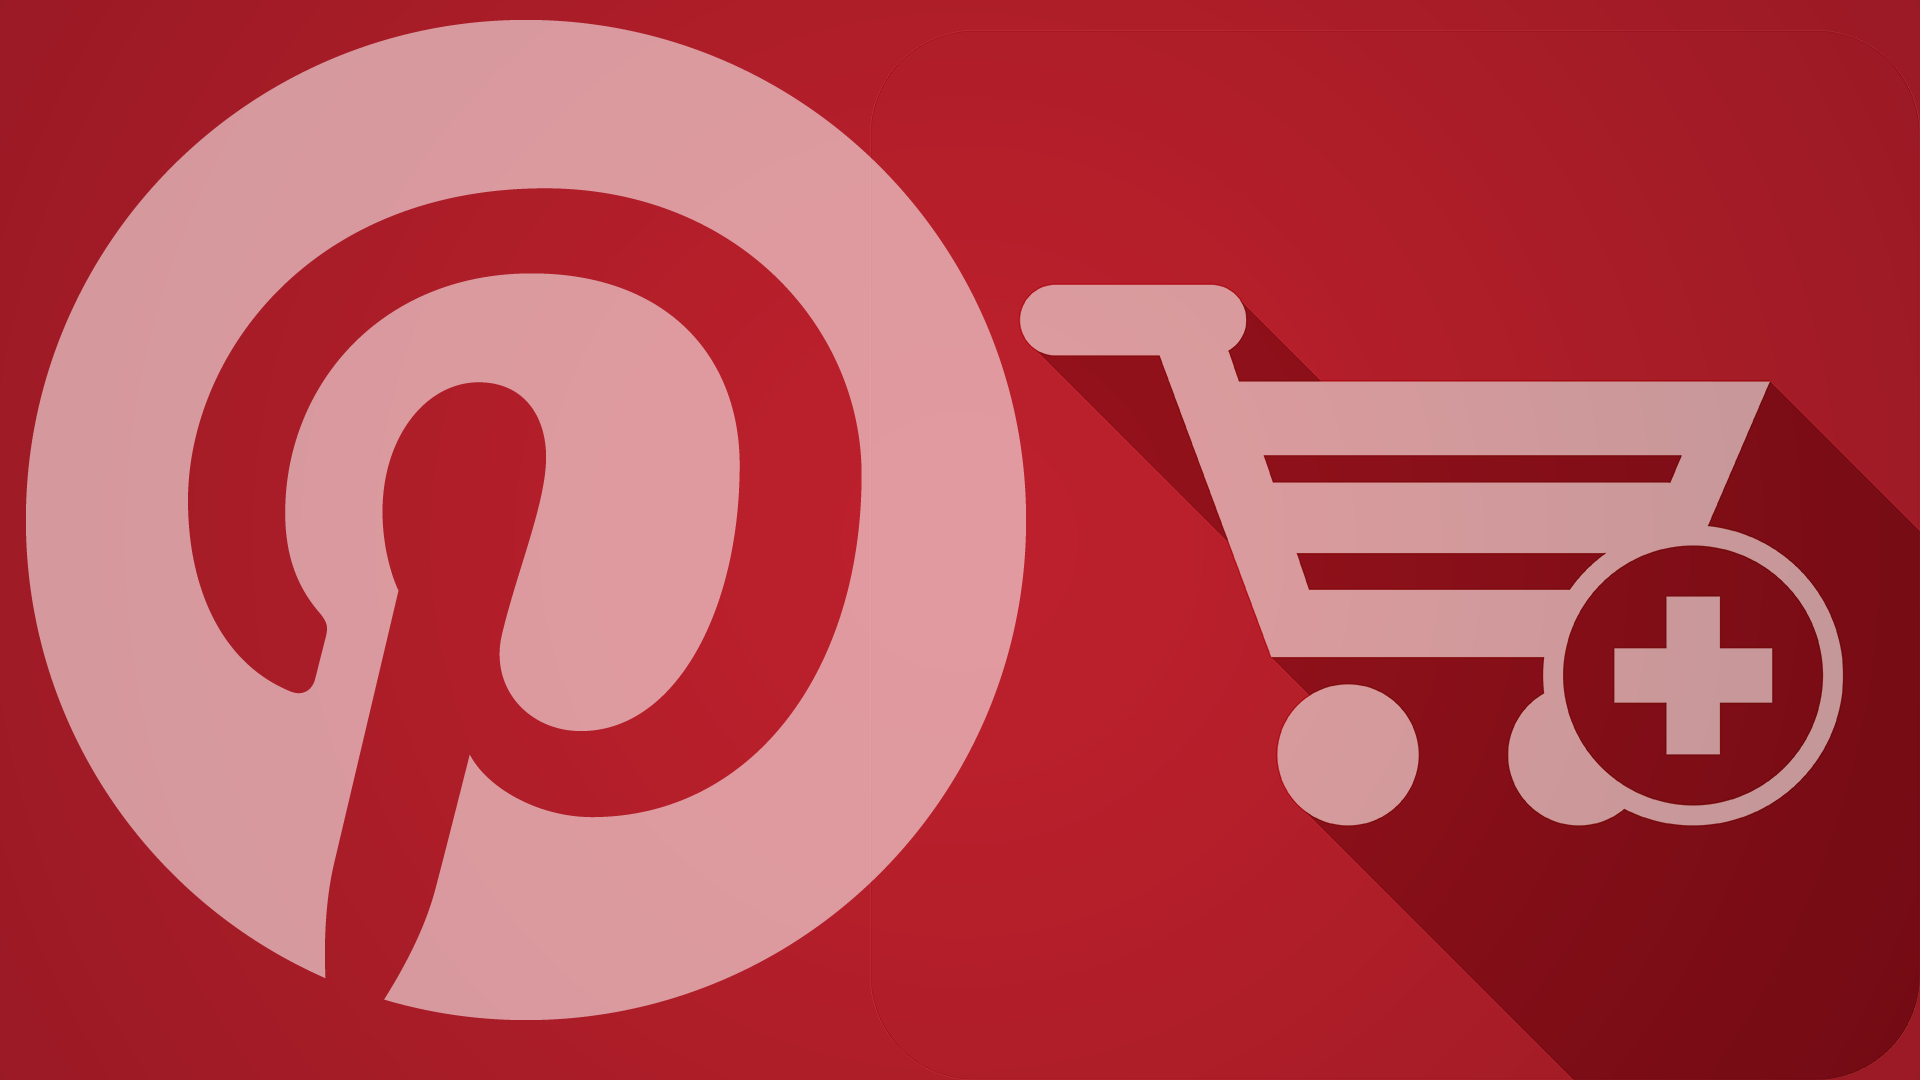 Pinterest Adding New Shopping Features